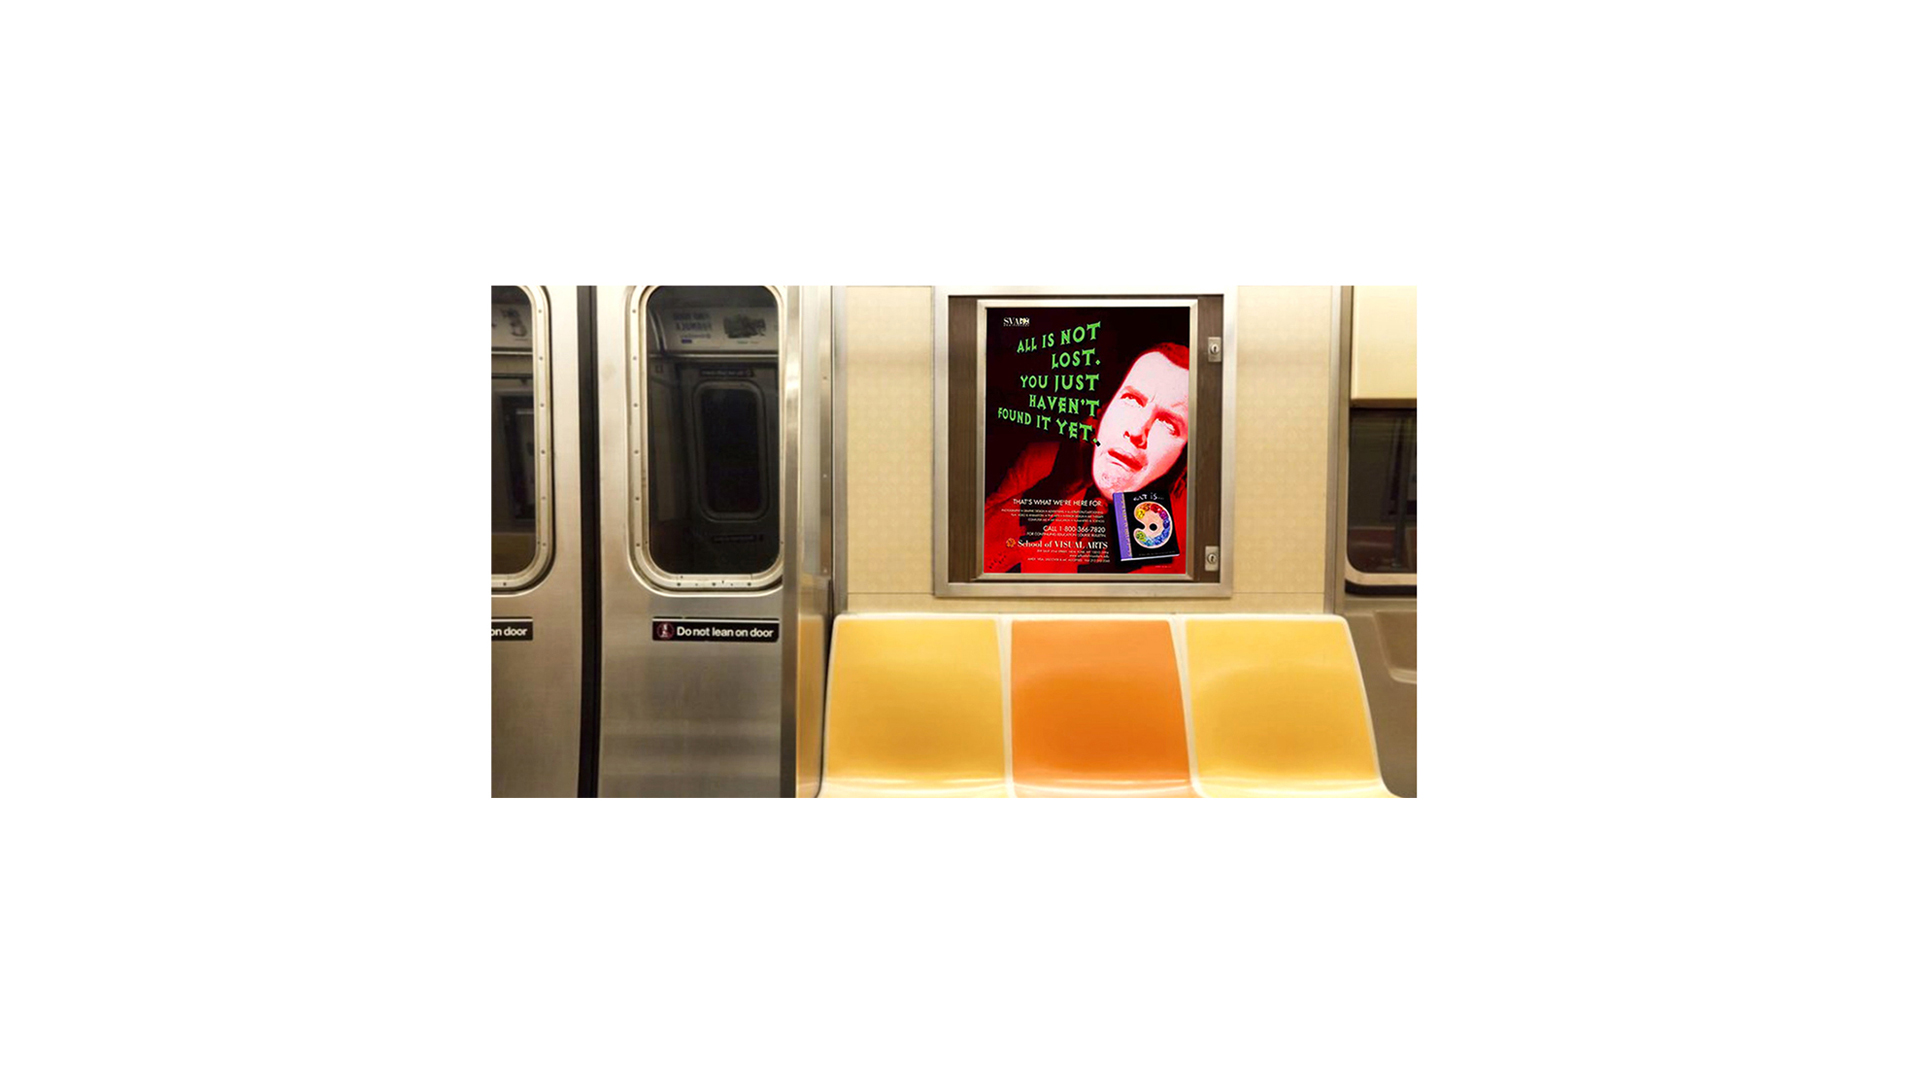 All if not Lost. You Just Haven't Found it Yet; MTA Transit, Phone Kiosk and Print Display Ad Campaign for School of Visual Arts; Jane Rubin, Co-Creative Director, Art Director, Designer; Created at McCabe & Company during 1996 - 97